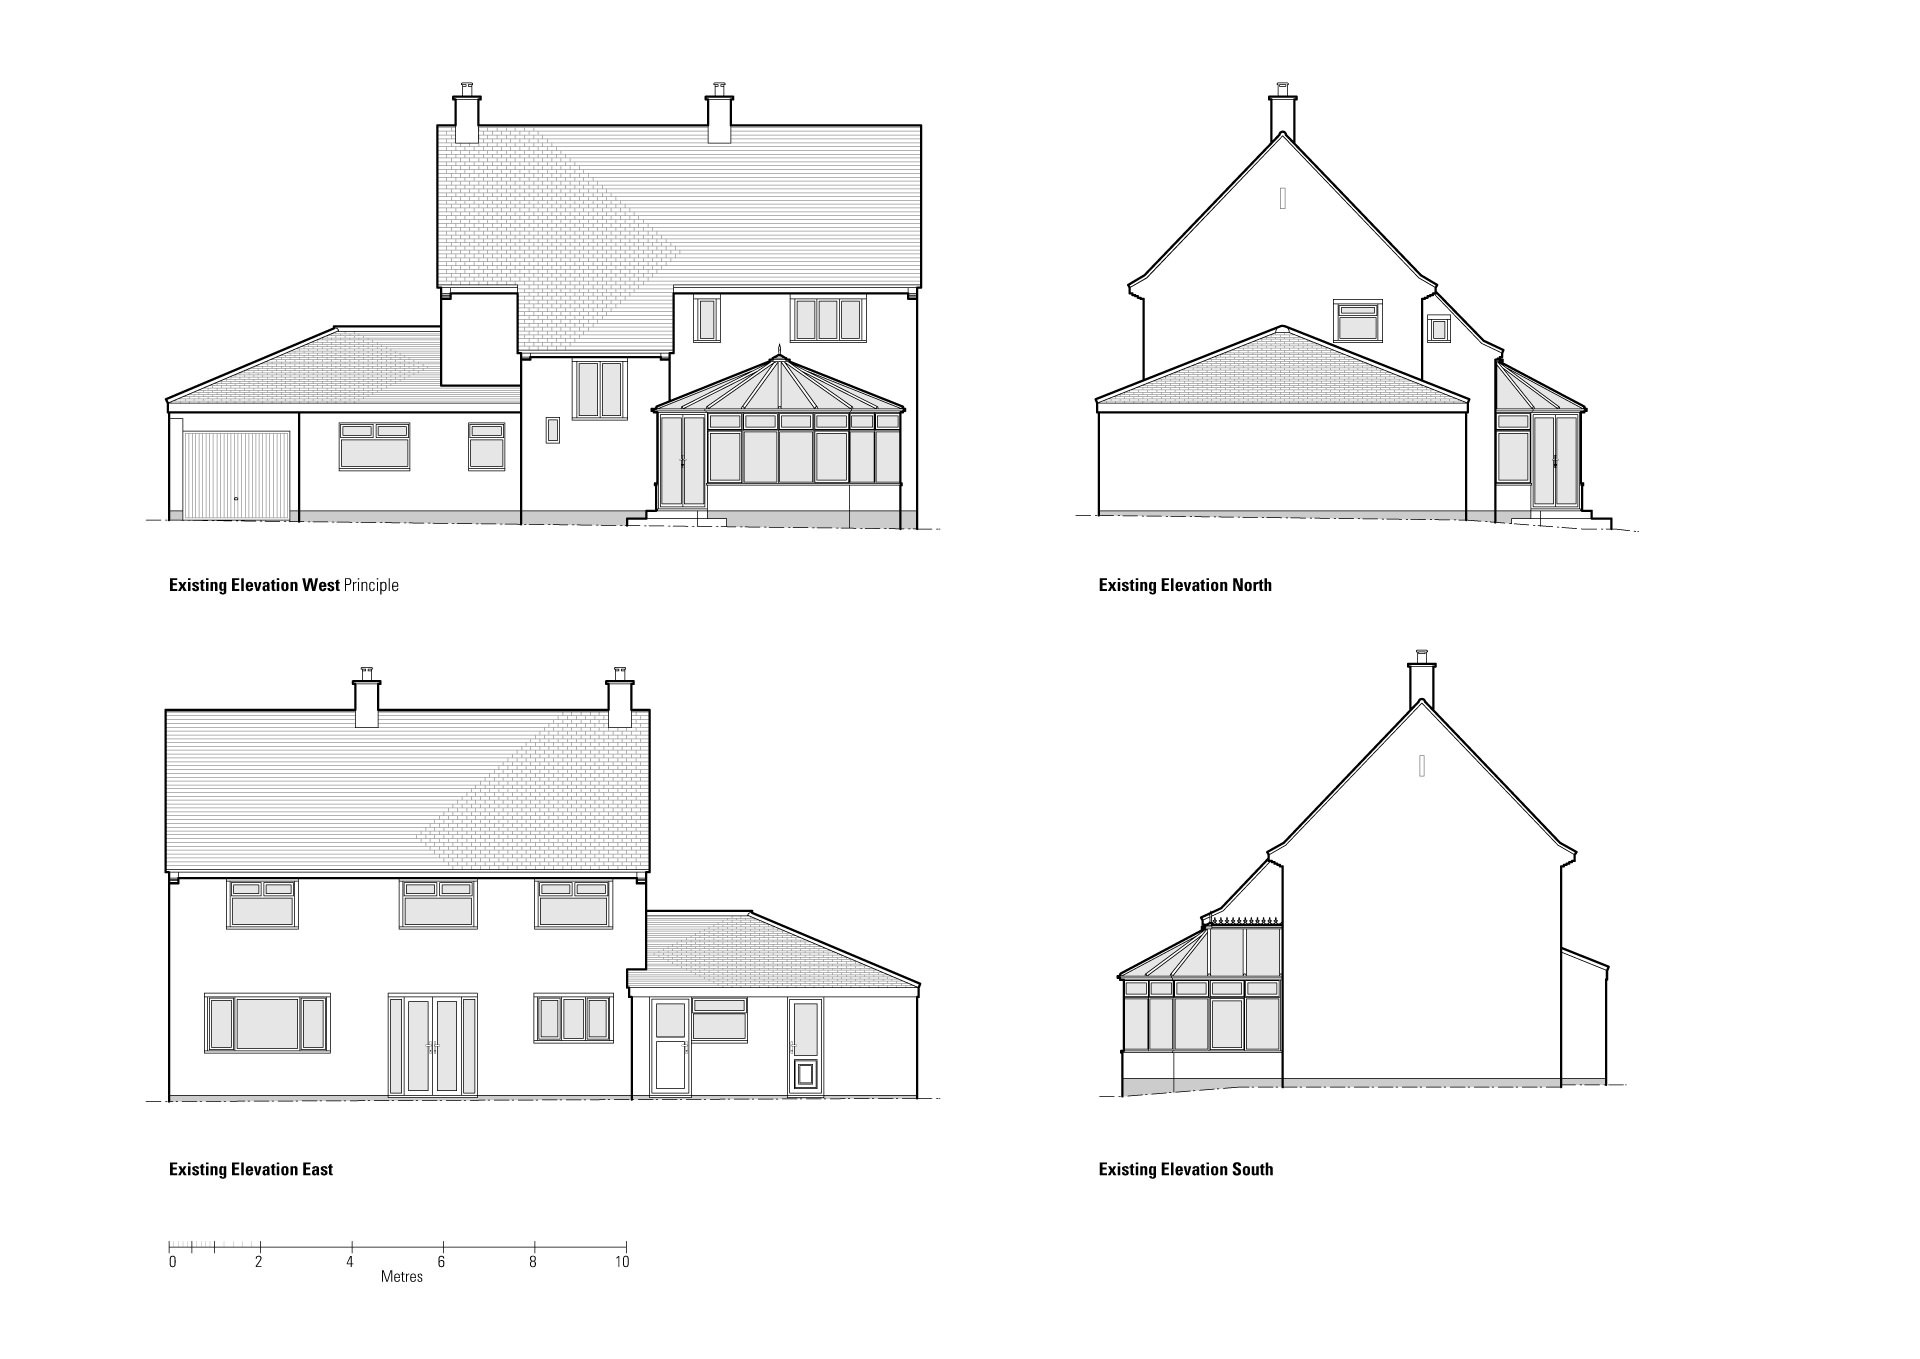 13 139 06A Existing Elevations.jpg